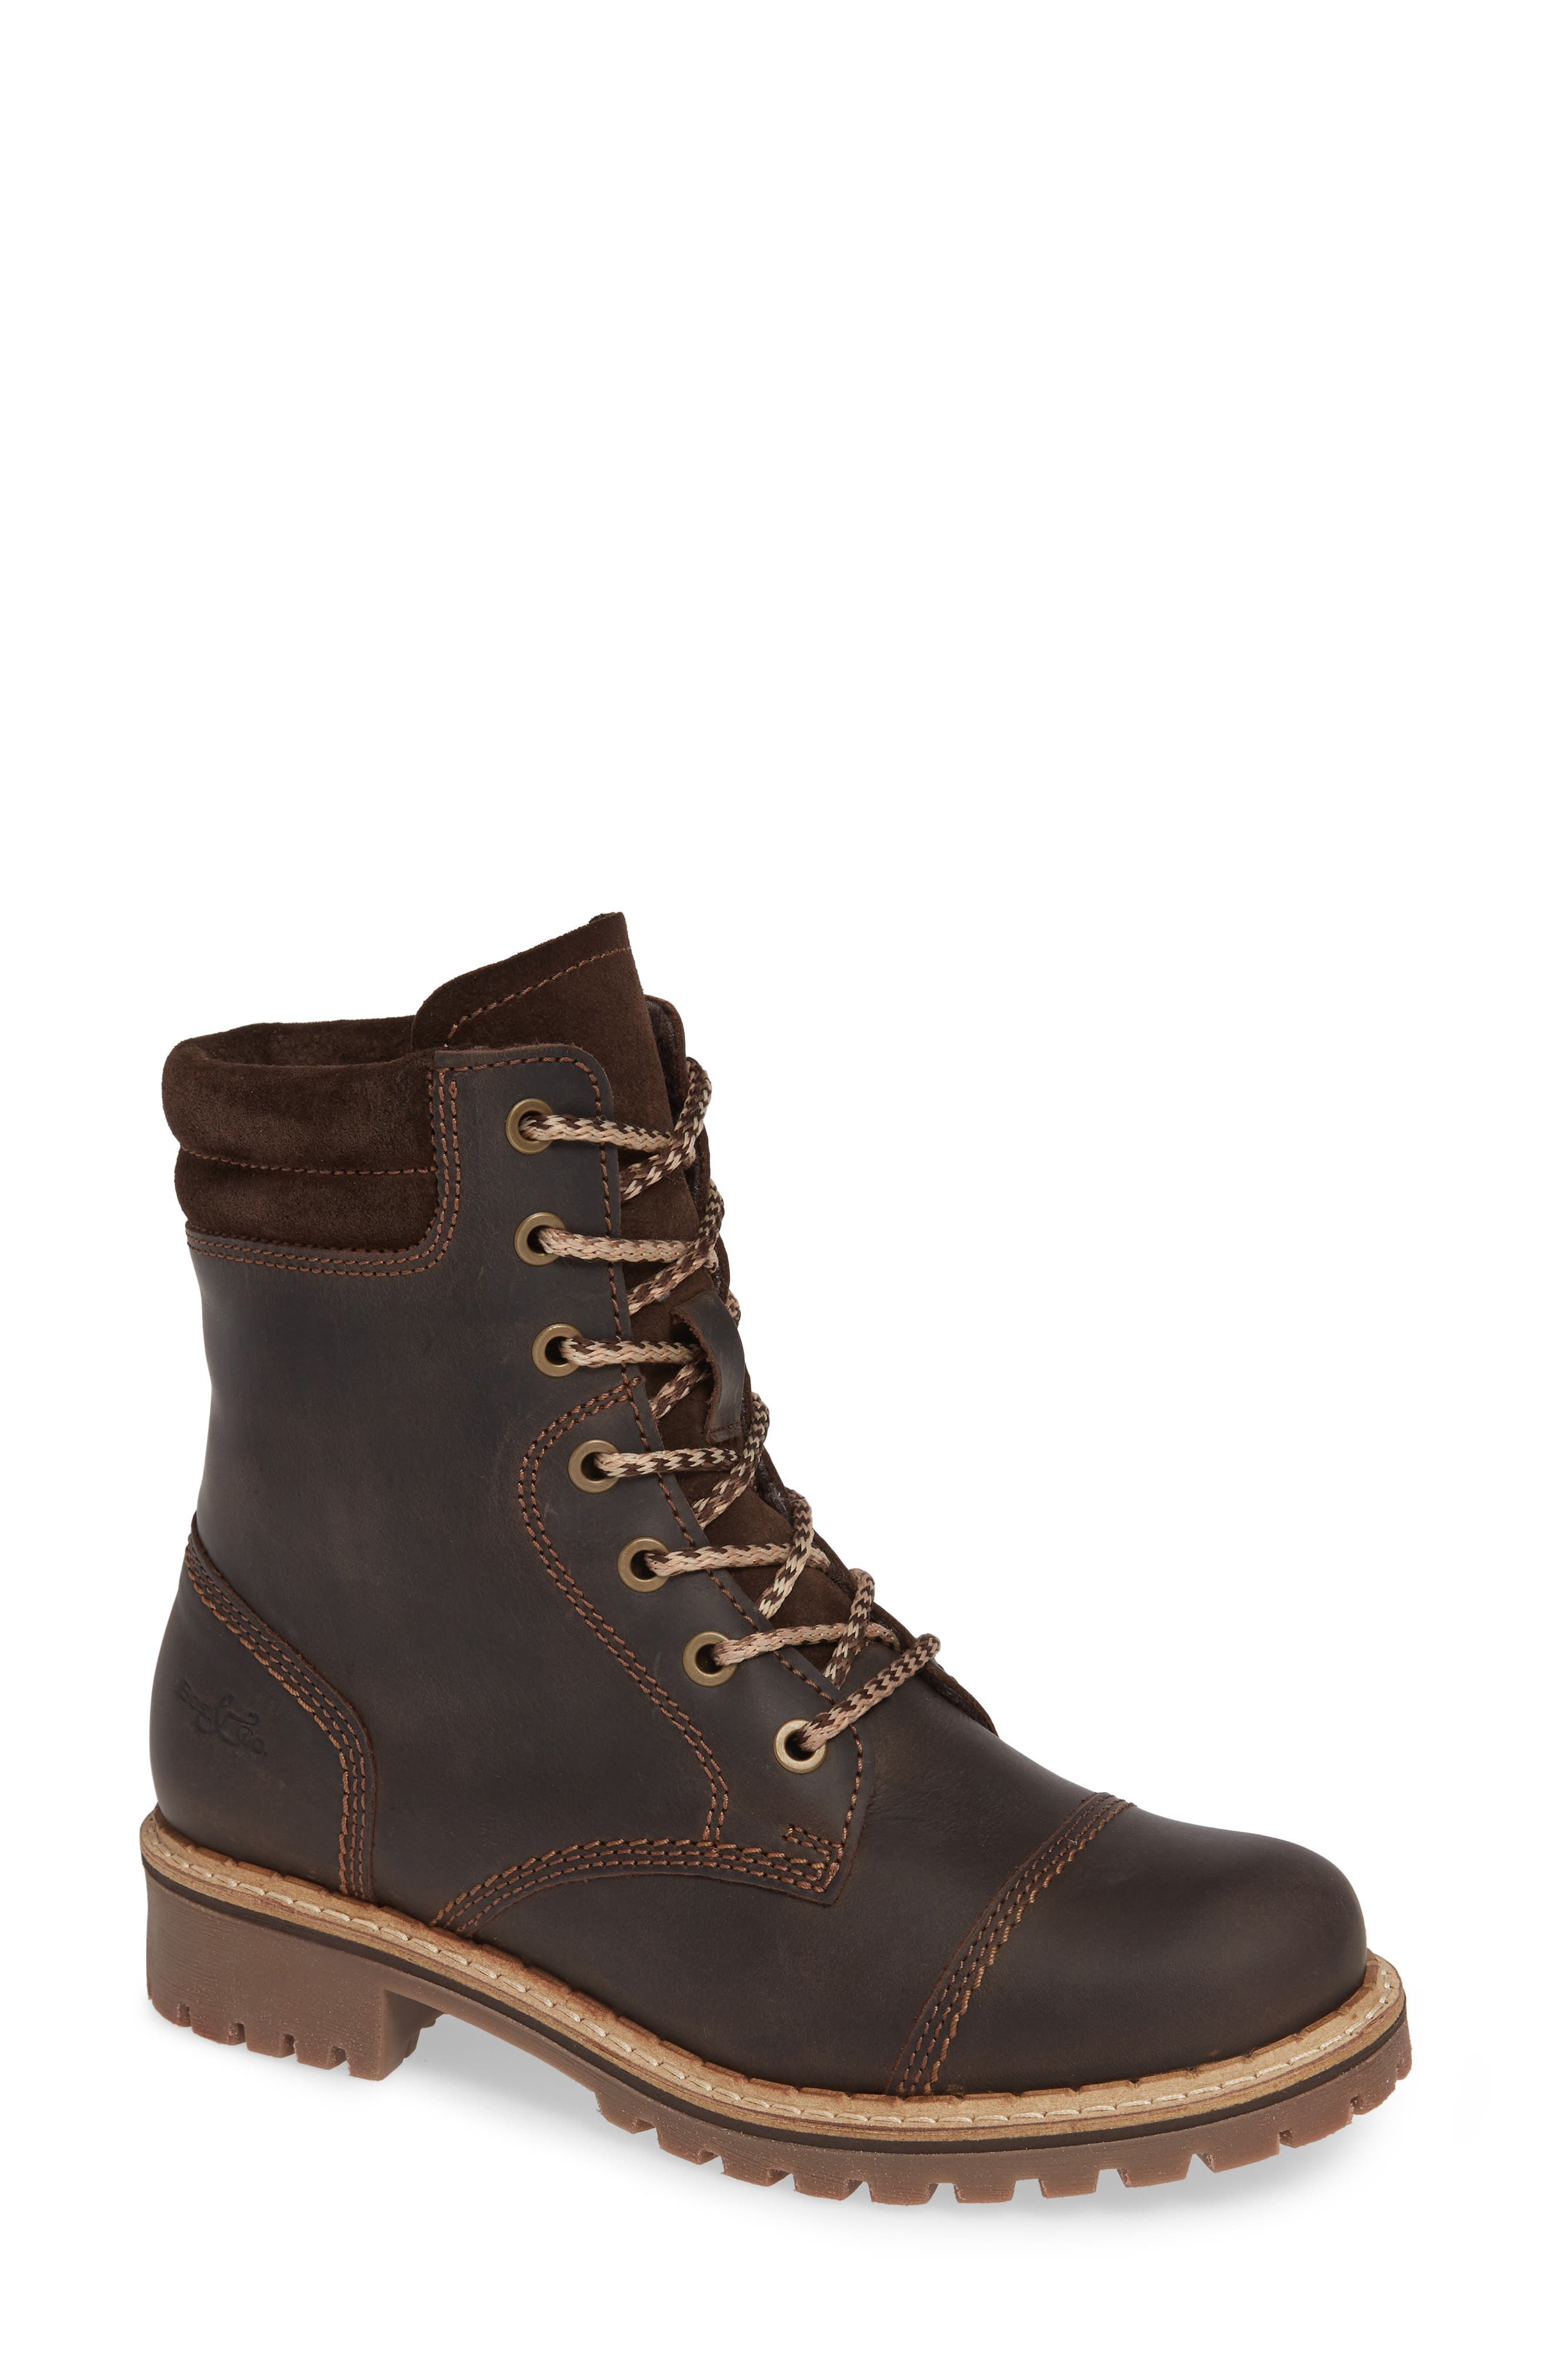 Bos. & Co. Hero Waterproof Hiker Boot, Brown